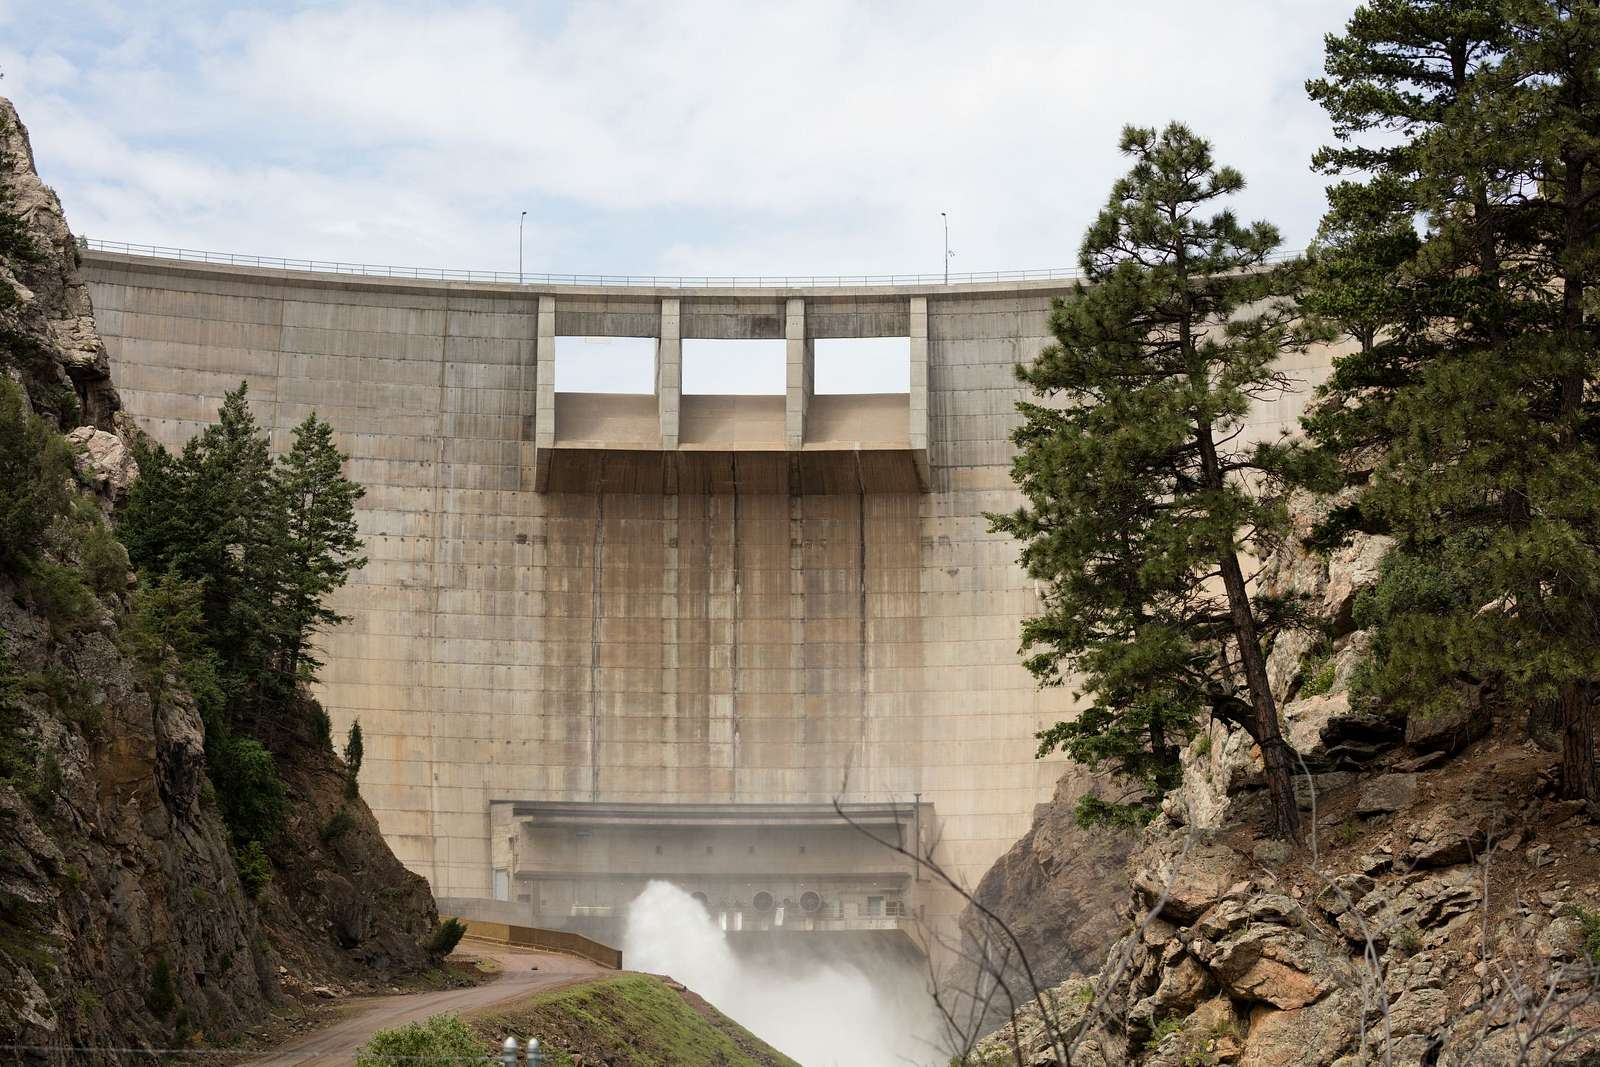 The roaring Strontia Springs Dam in Douglas, County, Colorado, diverts water from a giant reservoir into a 3.4 mile-long tunnel under the mountains to the Foothills Water Treatment Plant near Denver. Completed in 1983, this dam towers 243 feet above the South Platte River streambed, forming a 1.7-mile-long lake with 98 surface acres